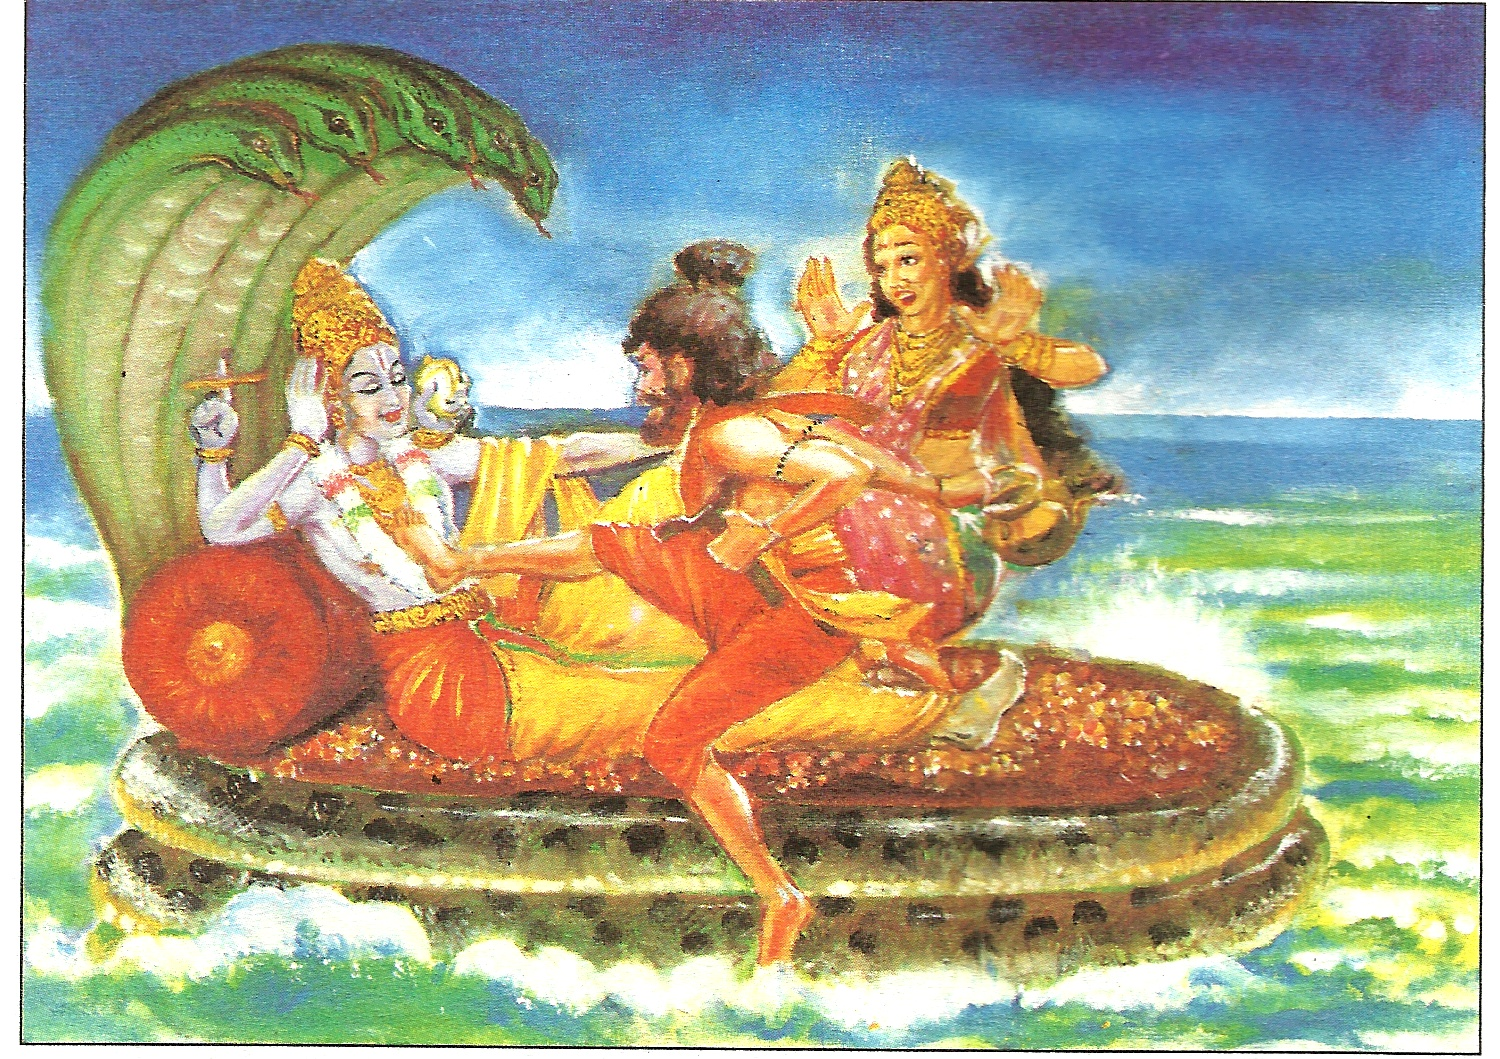 Lord Narayana Hd Wallpapers The Story Of Sri Maha Vishnu Come To Earth The Avatara Of